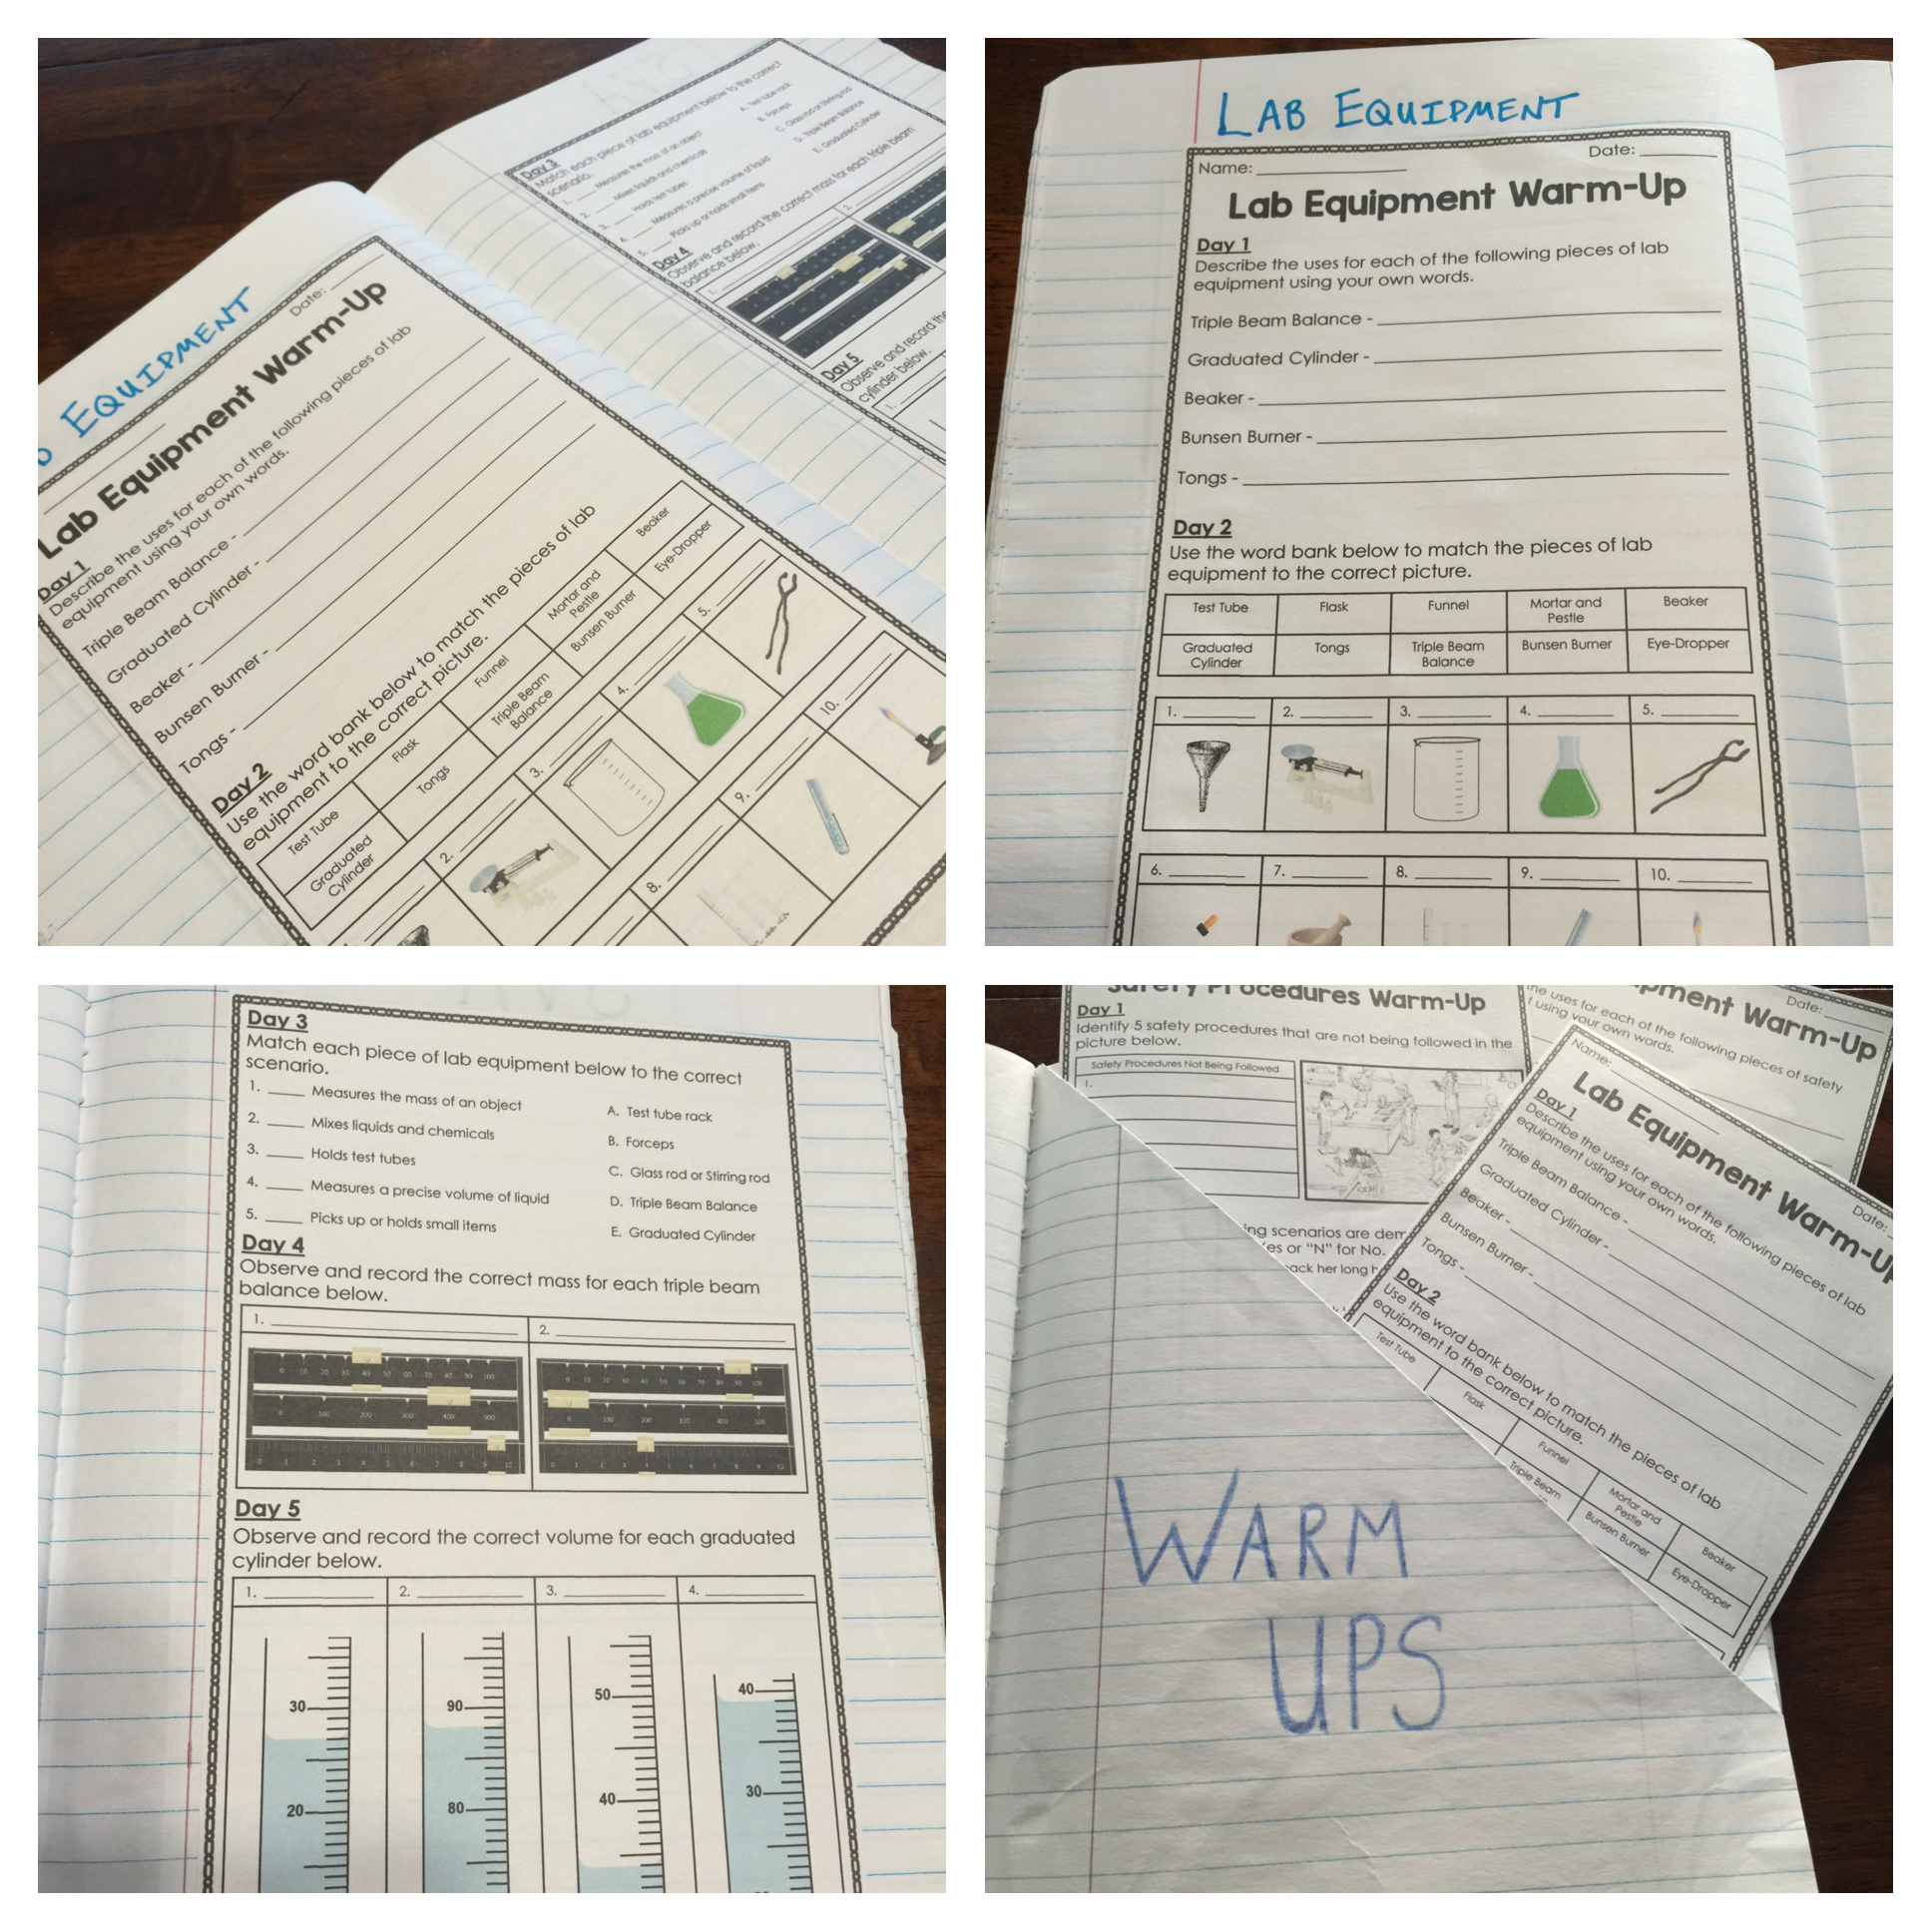 Safety and Scientific Method Warm-Ups